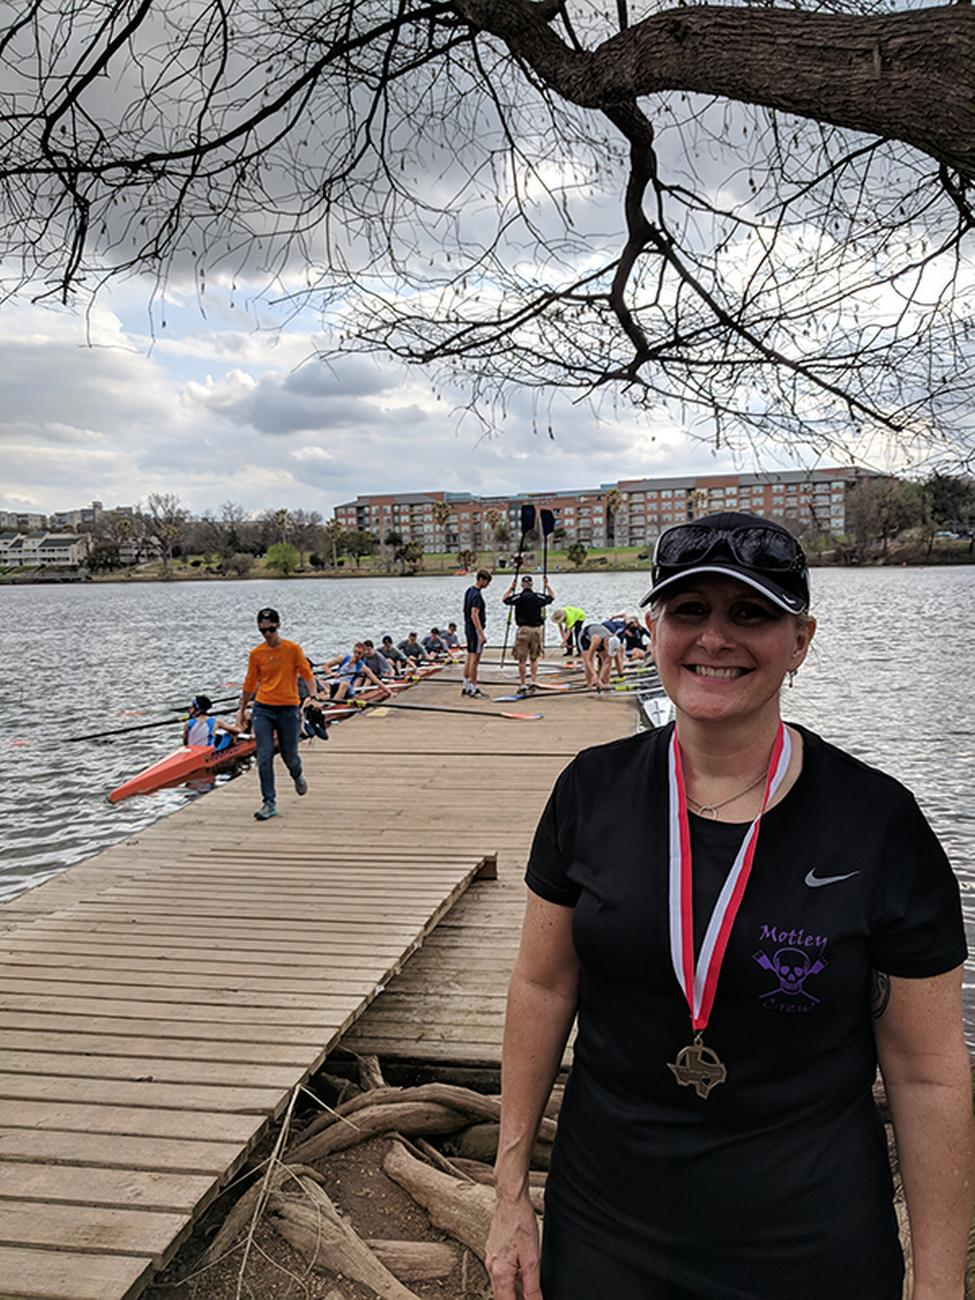 Tammy Foy was able to get back to rowing with her crew following a procedure at UT Physicians. (Photo courtesy of Tammy Foy)